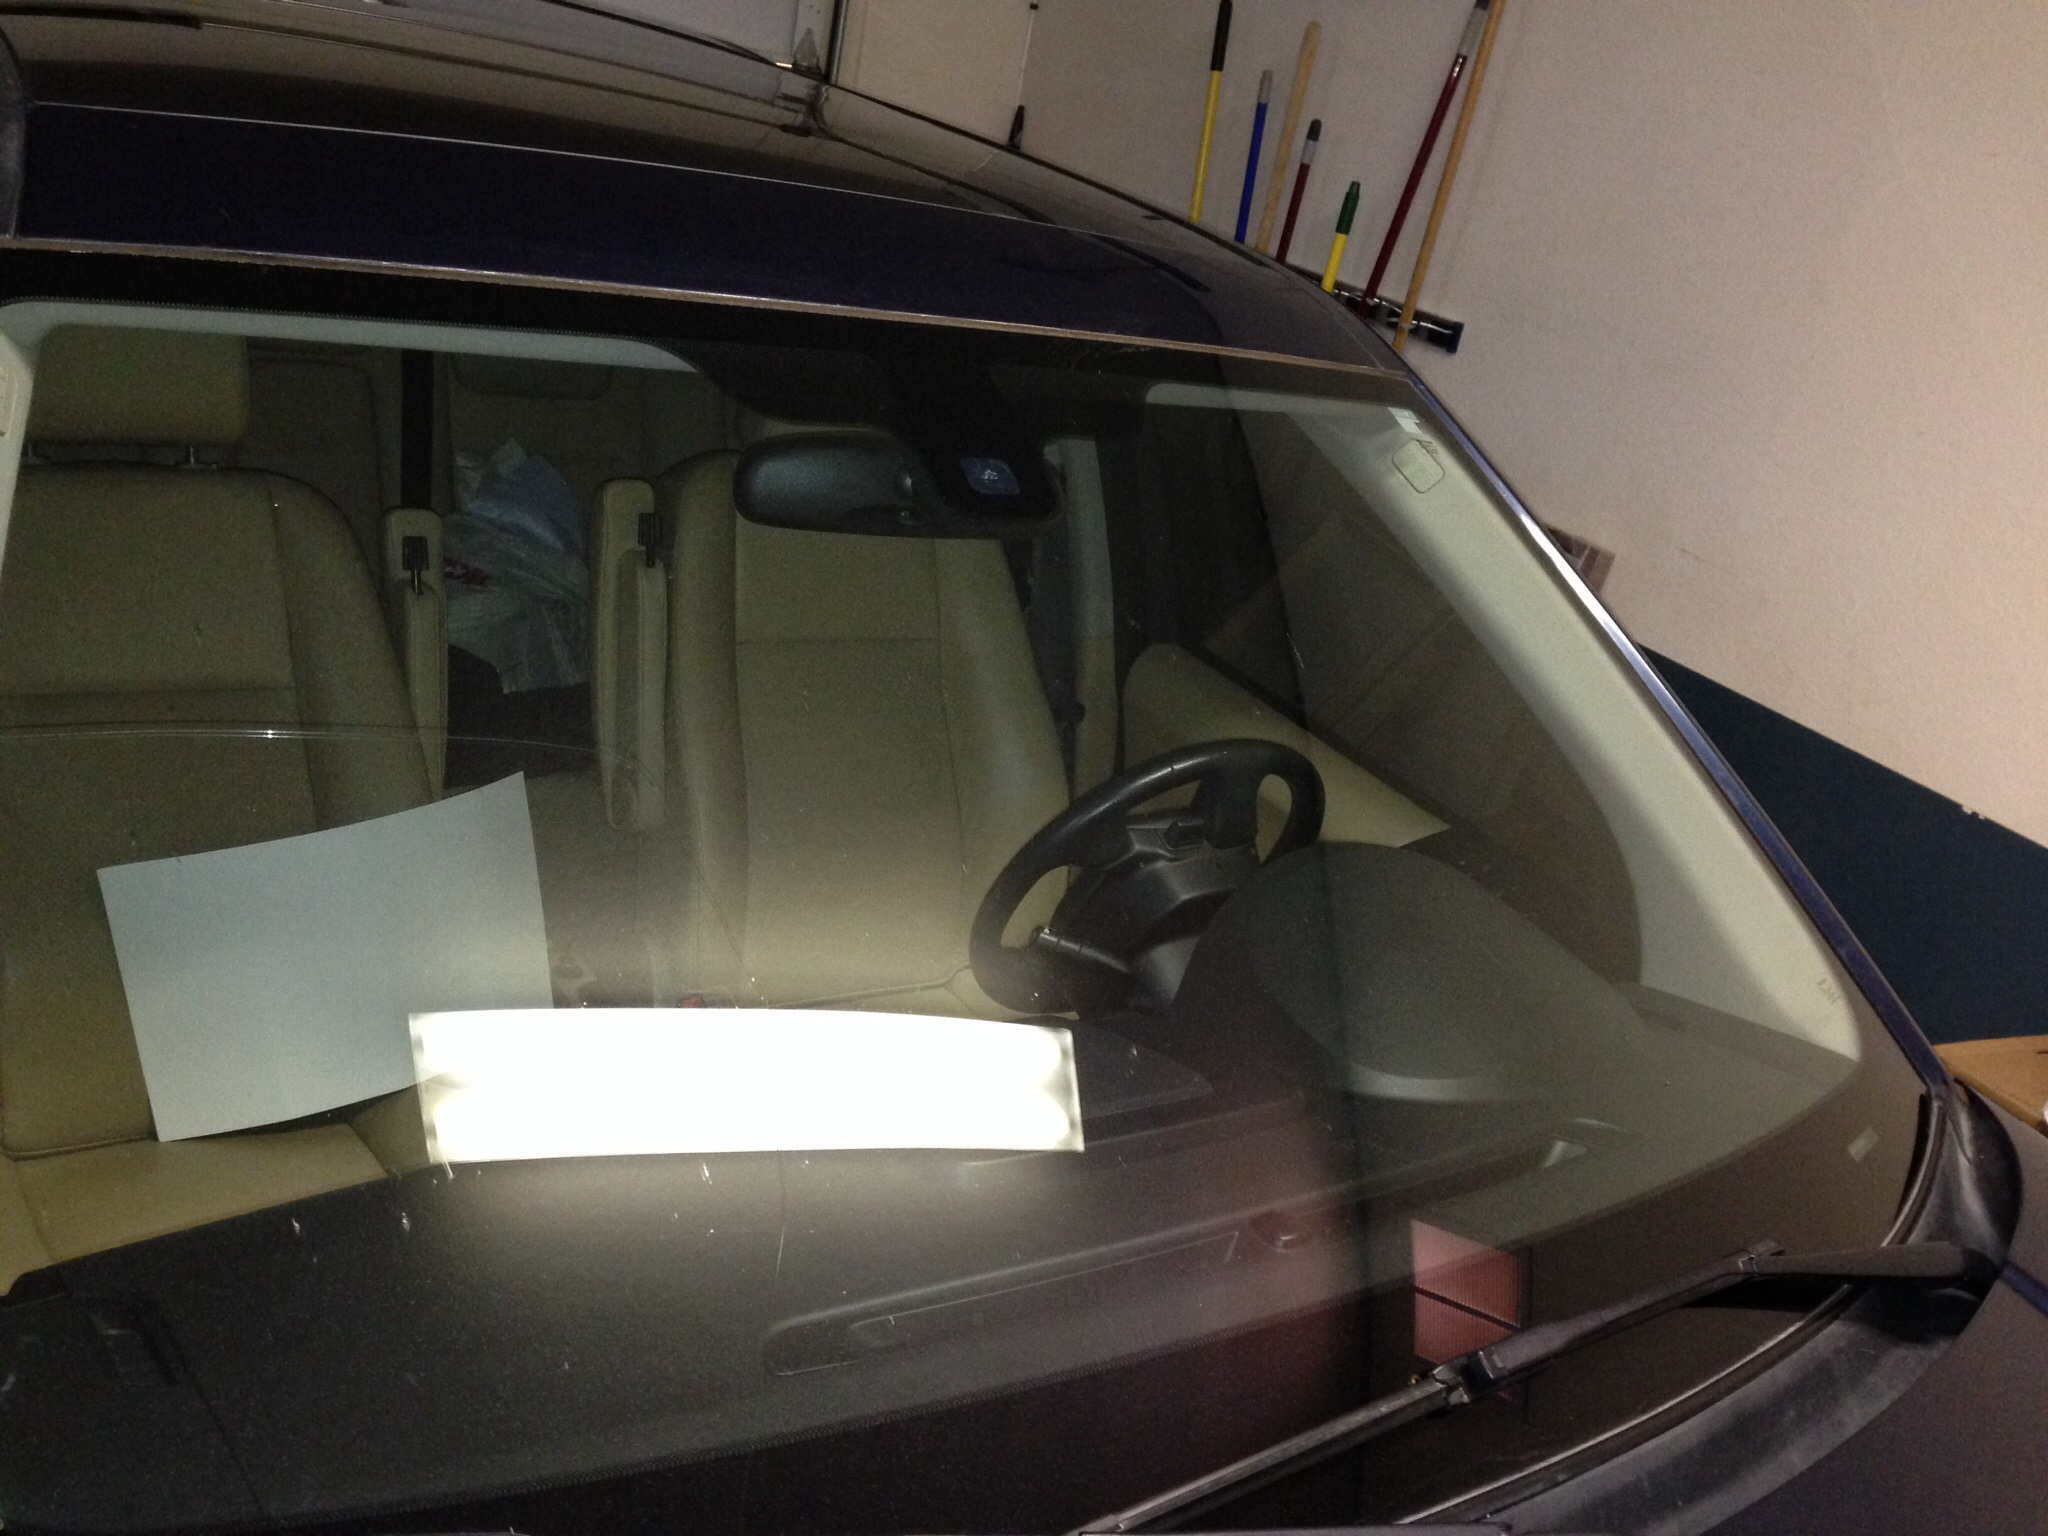 lr2 windshield replacement prices local auto glass quotes. Black Bedroom Furniture Sets. Home Design Ideas